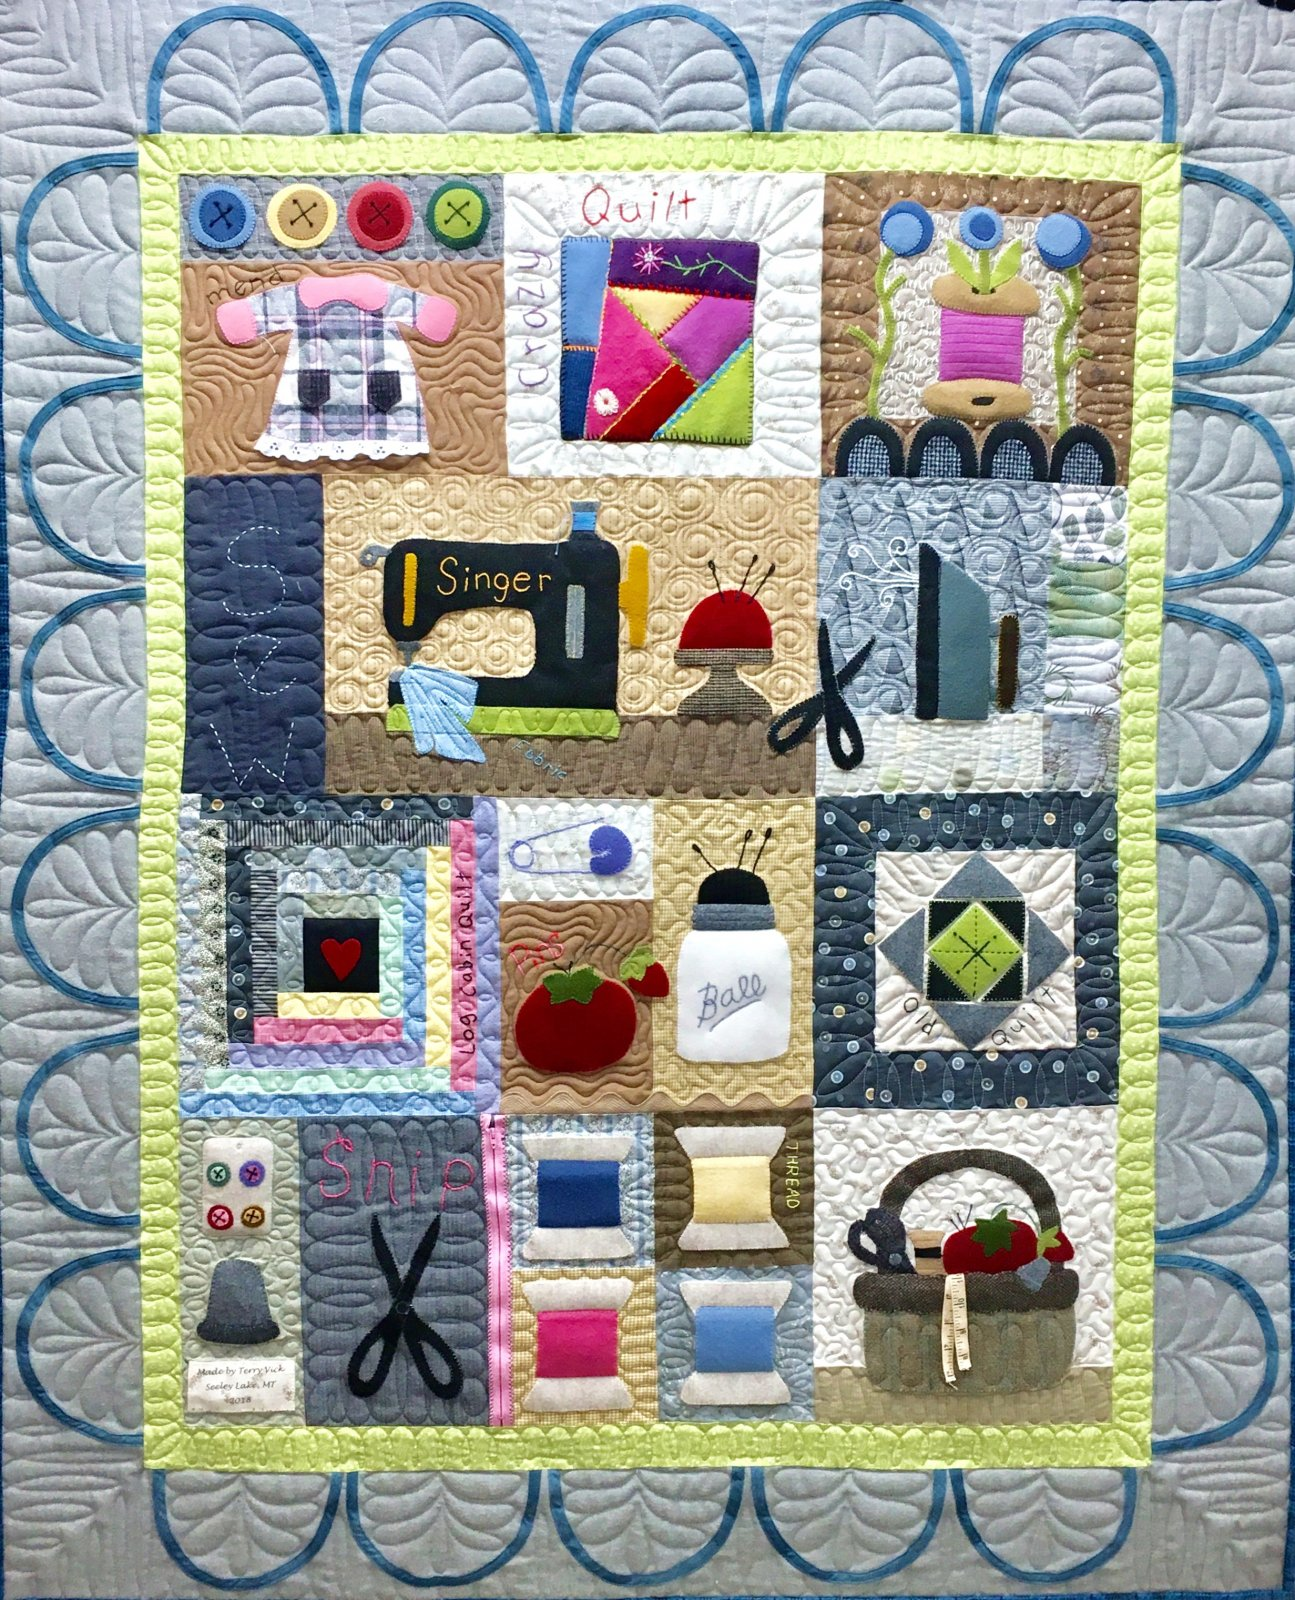 Sew Love Quilt full kit